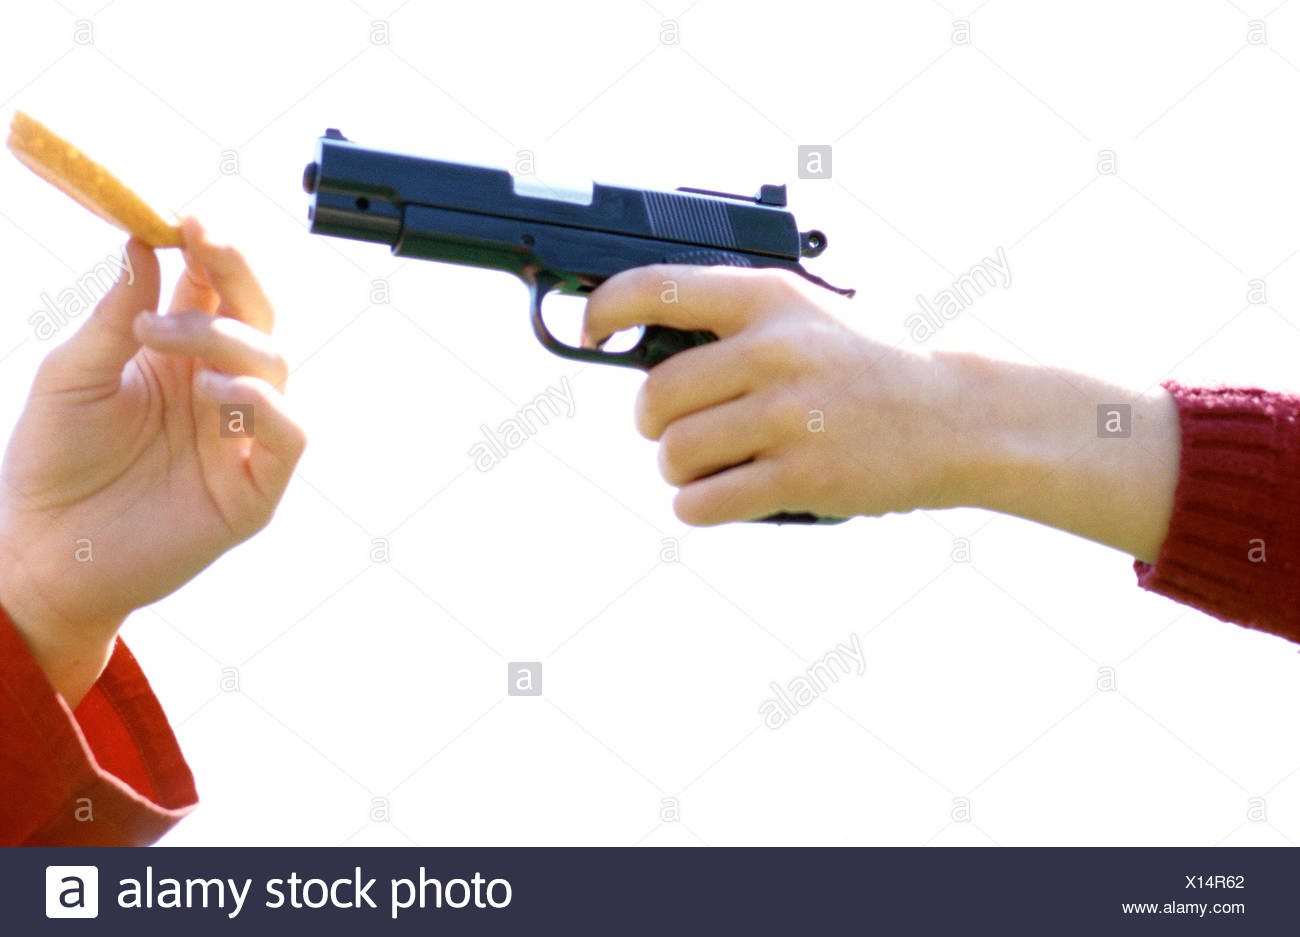 Children's hands, one holding gun, the other holding slice of fruit - Stock Image